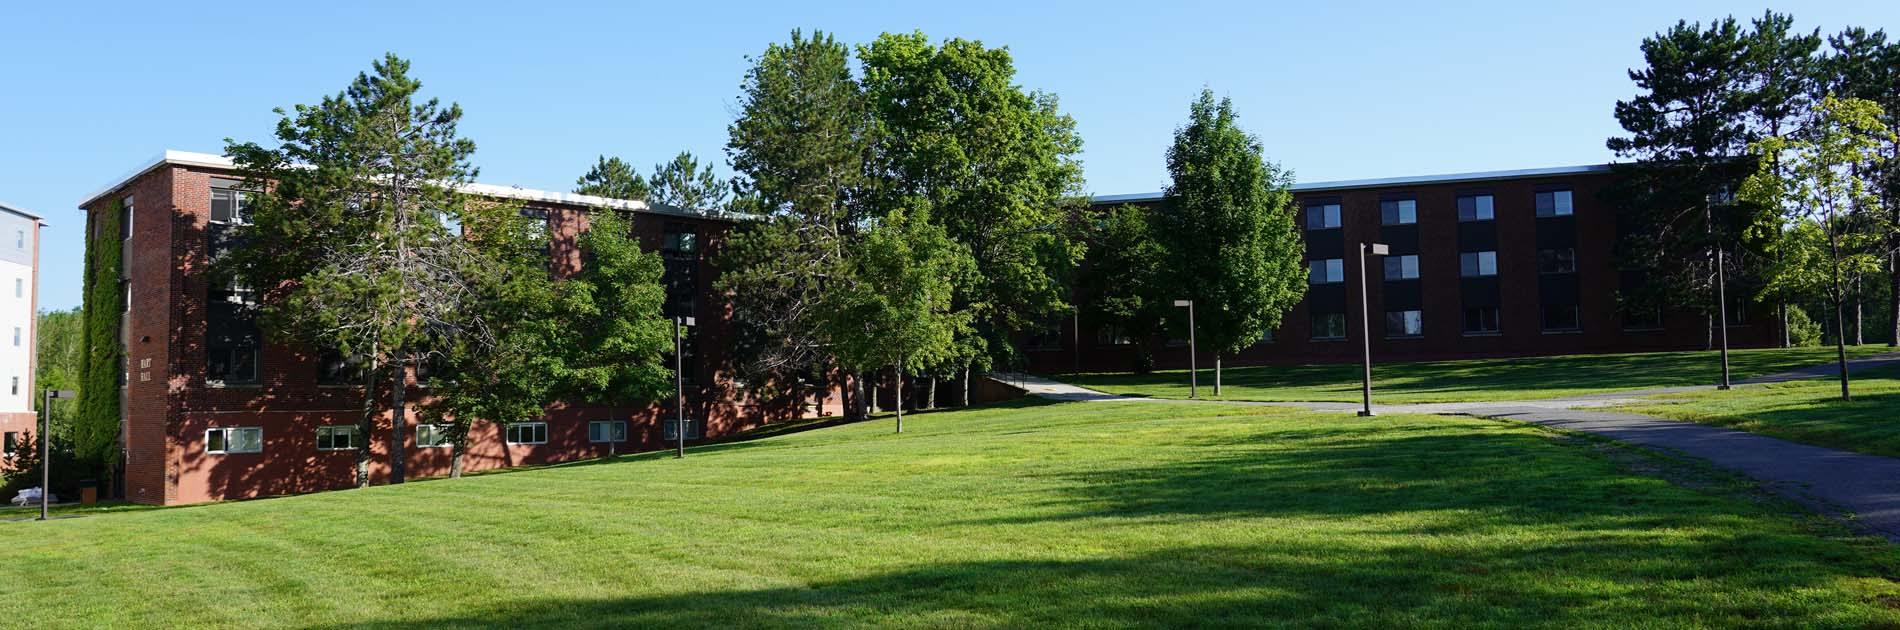 hart hall outside view with trees